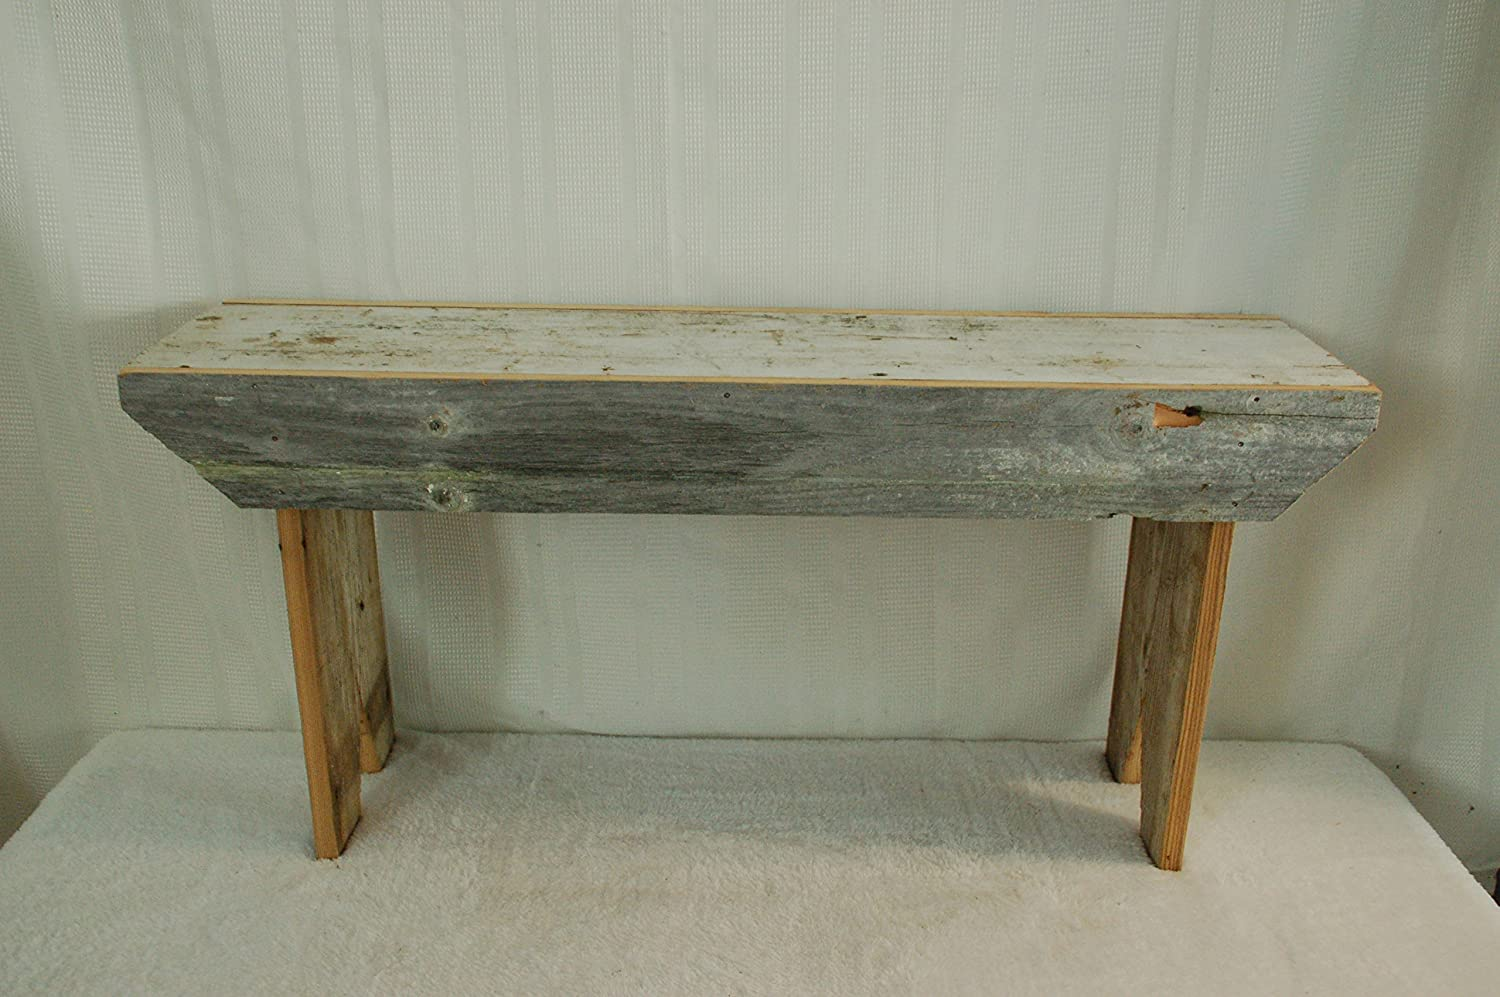 "Rustic 3 Foot Barnwood Bench. This Country Bench Seats Varies in Width From 8 - 10"" and Stands 16"" Off Ground. Made From Antique Barnwood in Excess of 100 Years Old. This Rustic Primitive Bench Is a Great Addition to Your Home and Garden Landscape Design. Spectacular Bench and a Piece of History At a Spectacular Price."